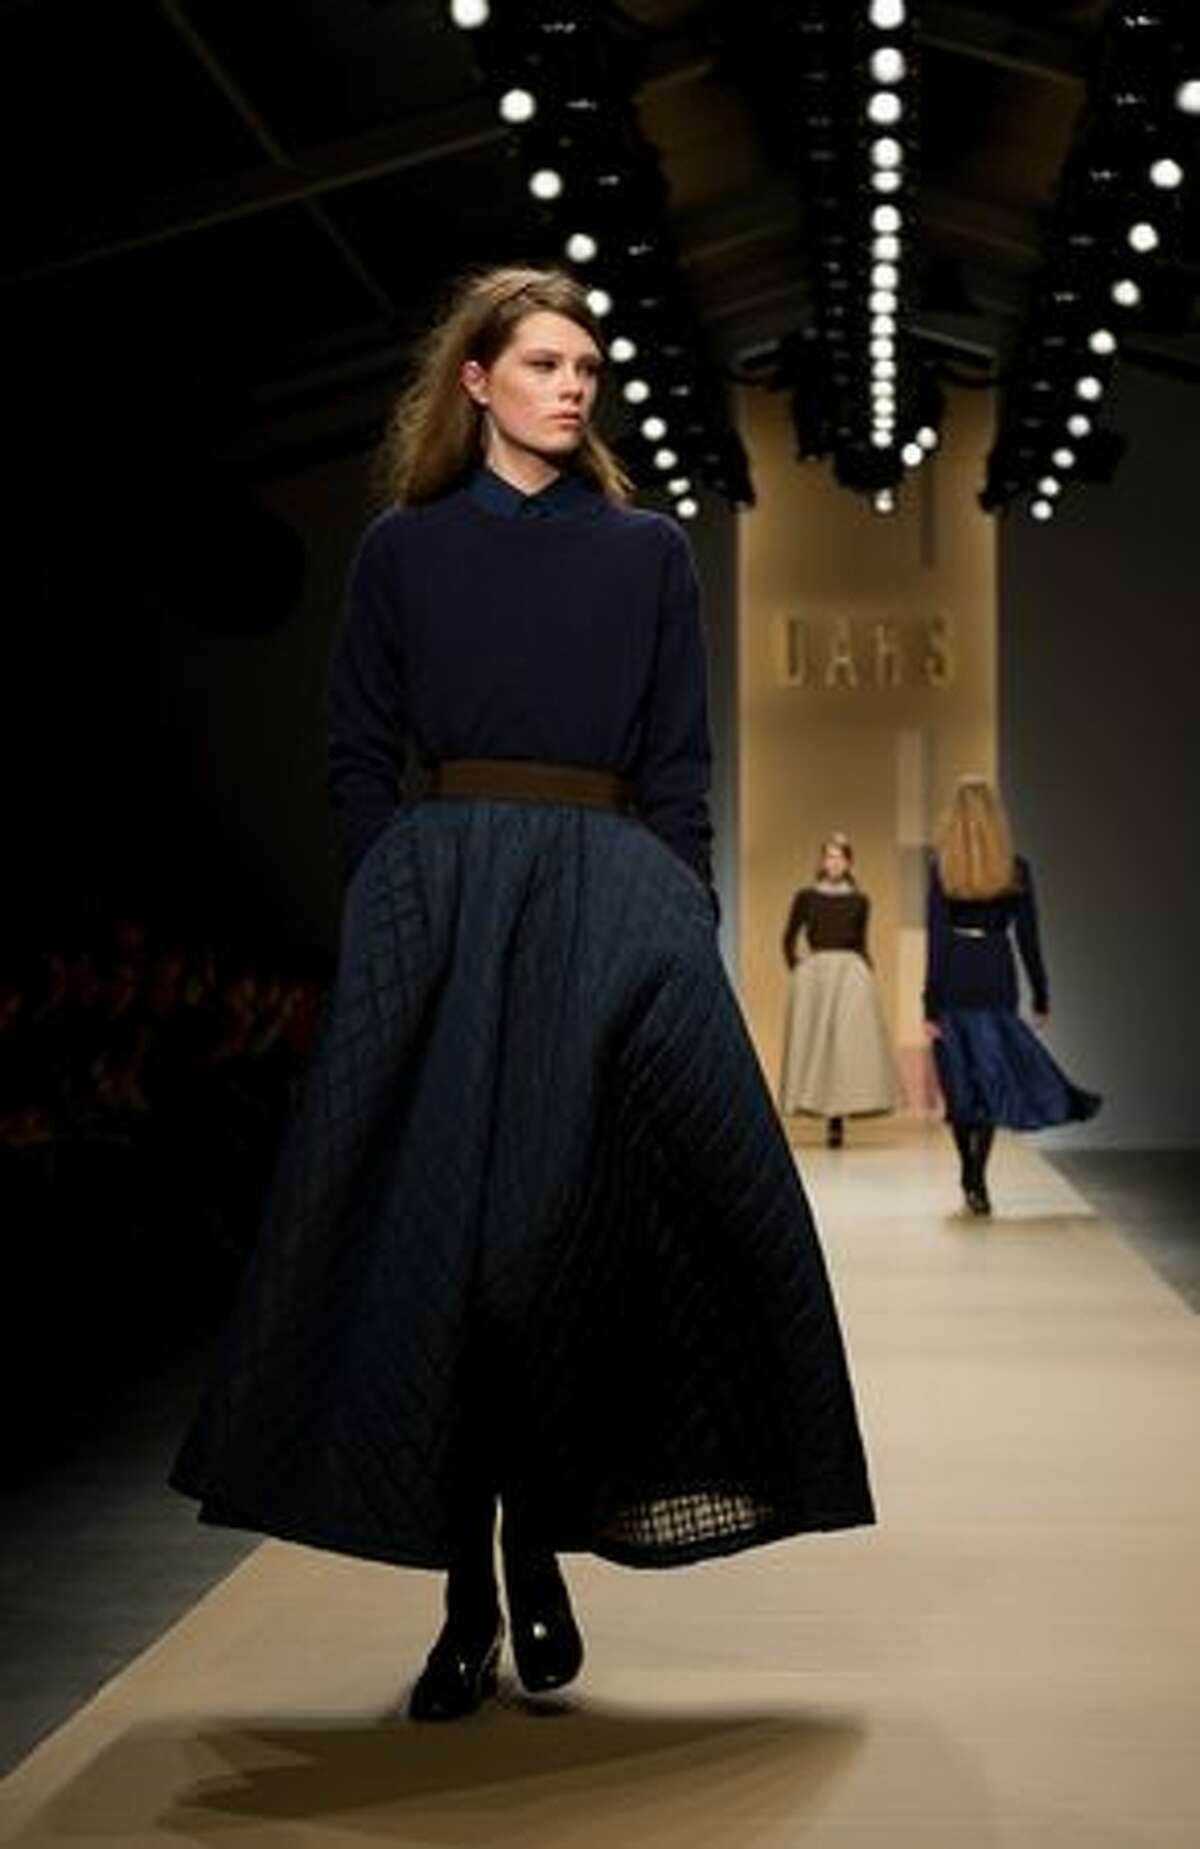 A model walks the runway at the DAKS show during London Fashion Week Autumn/Winter 2011 at Somerset House in London on Saturday, Feb. 19, 2011.